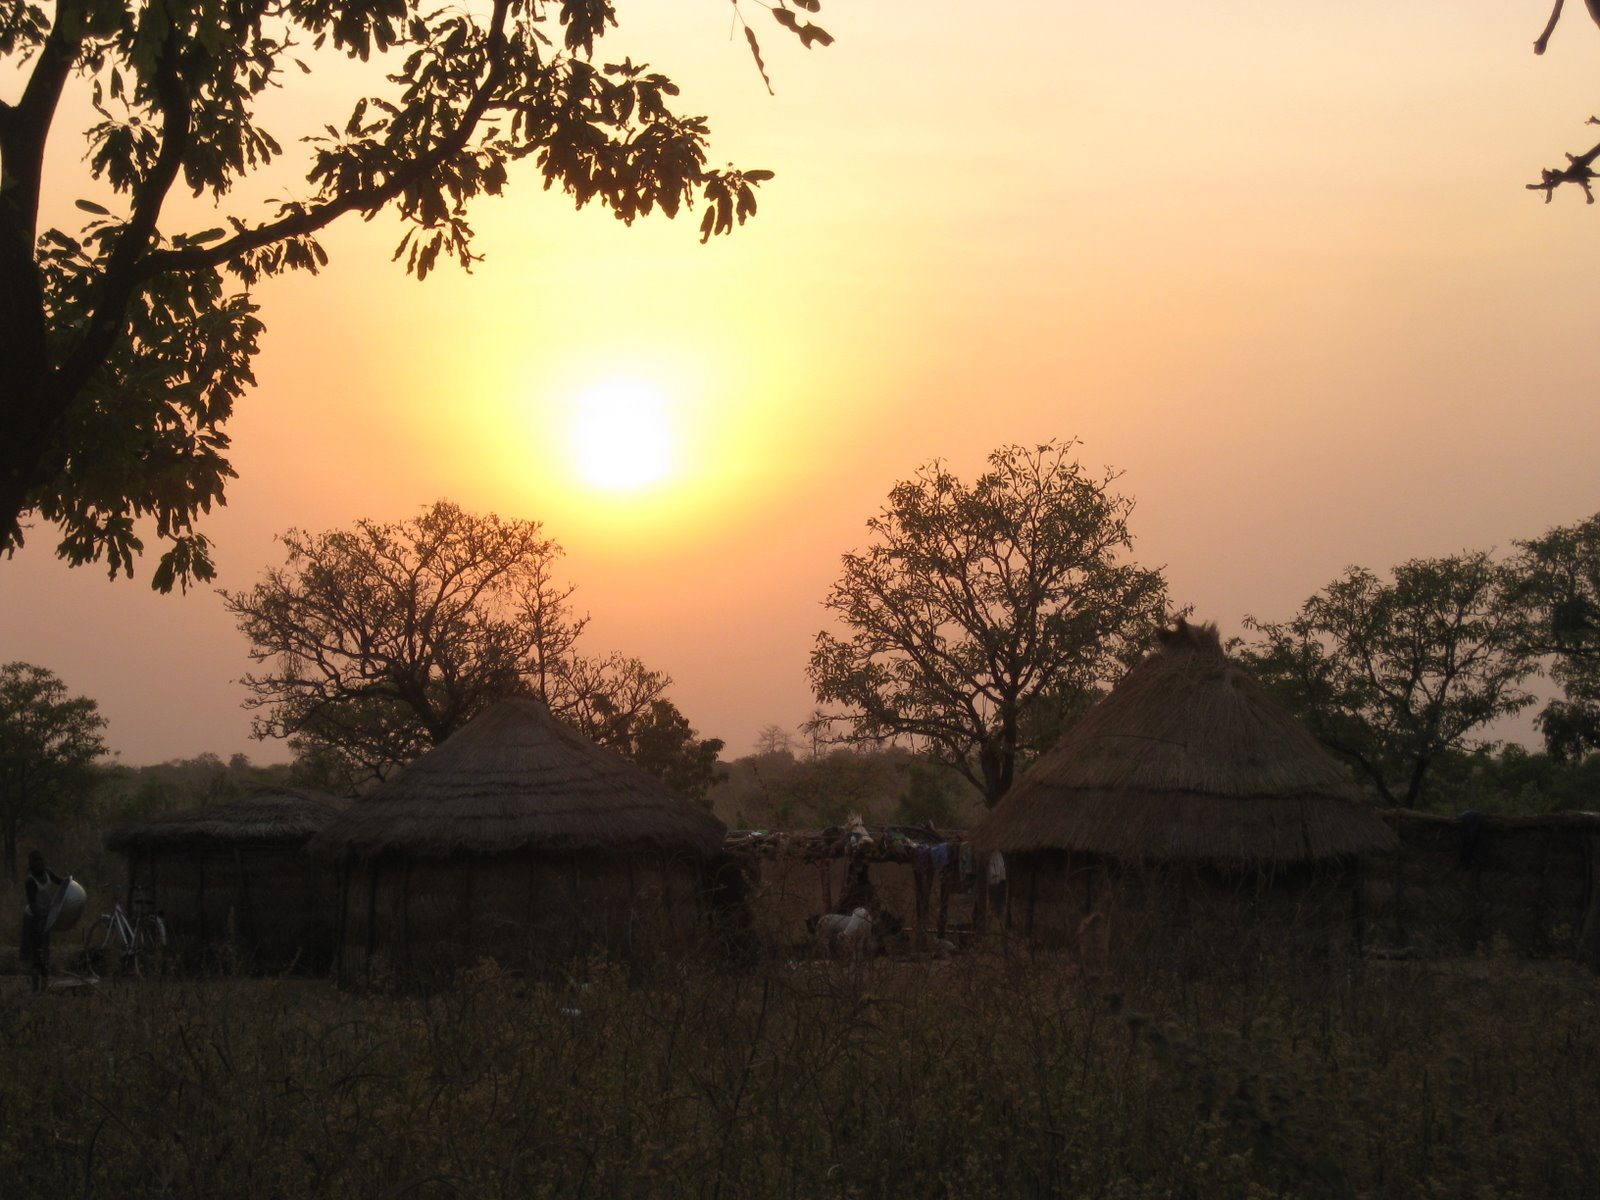 Sunset in Nymaliga, Northern Region Ghana